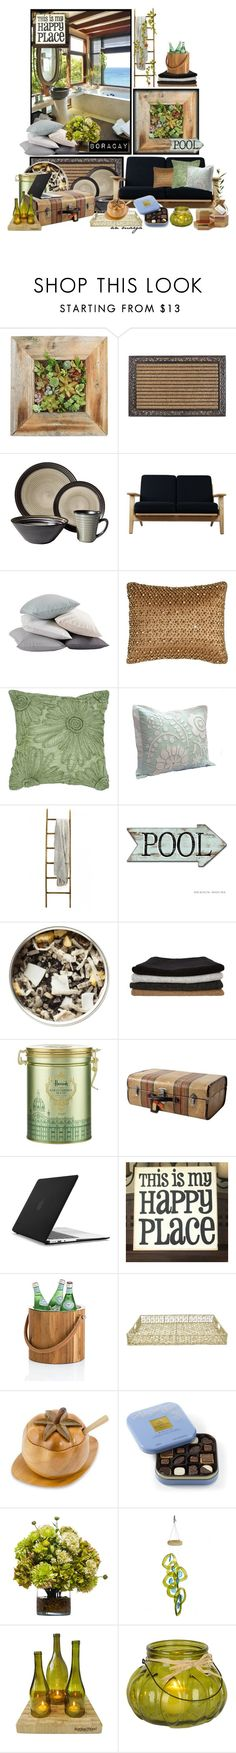 """Pick a Planter! Boracay, Philippines"" by anmarga ❤ liked on Polyvore featuring interior, interiors, interior design, home, home decor, interior decorating, Sango, Rove Concepts, Coyuchi and Pyar & Co."